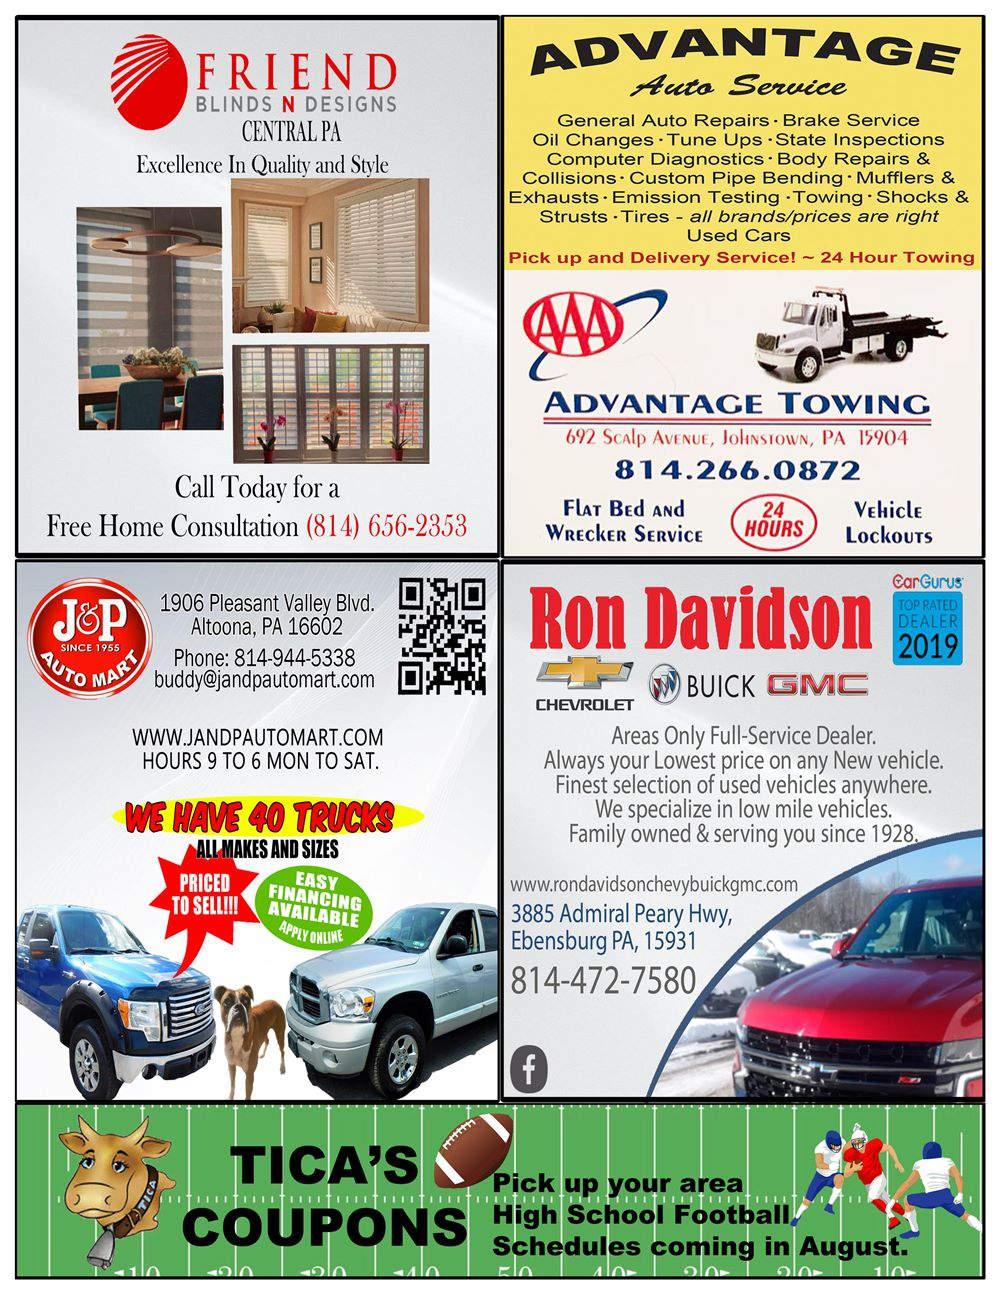 Johnstown coupon book back cover Aug 21